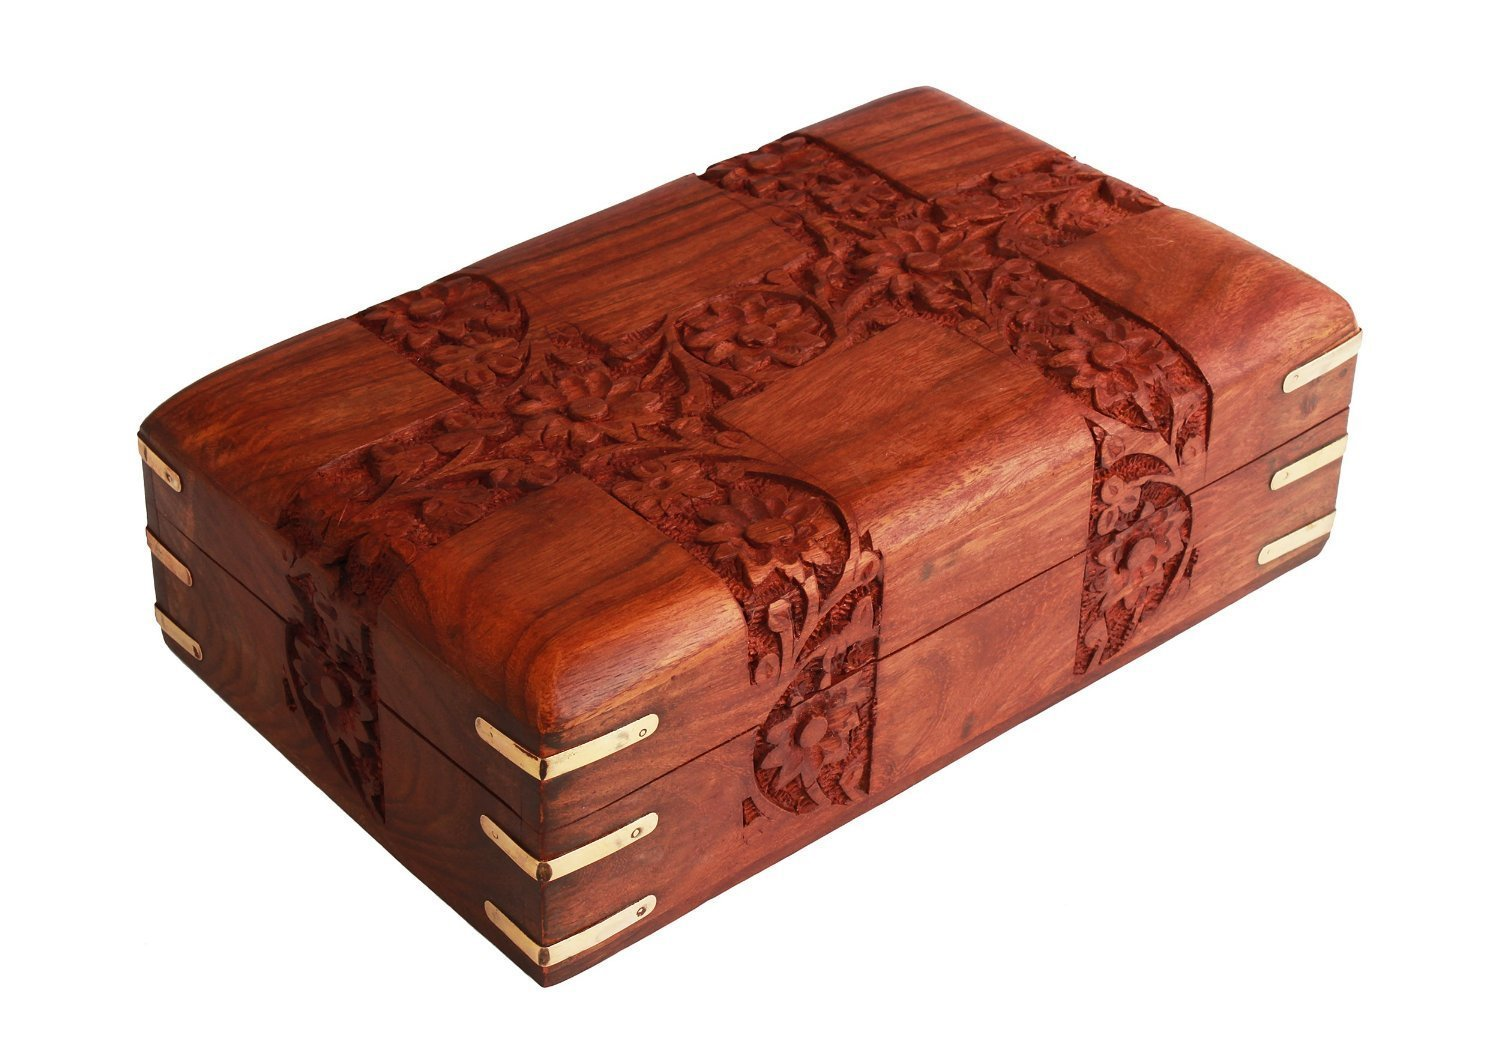 Charming Hand Carved Wooden Decorative Trinket Jewellery Box (15.2 X 10.2 X 6.4) Cm With Floral Carvings & Brass Corners Store Indya